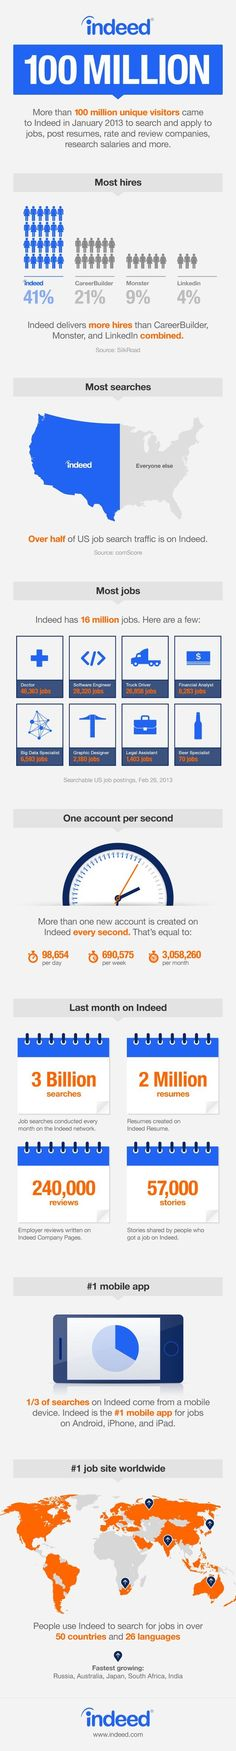 Management : Management : Lovin- my employeer- Indeed.com 100 million visitors in January!  I